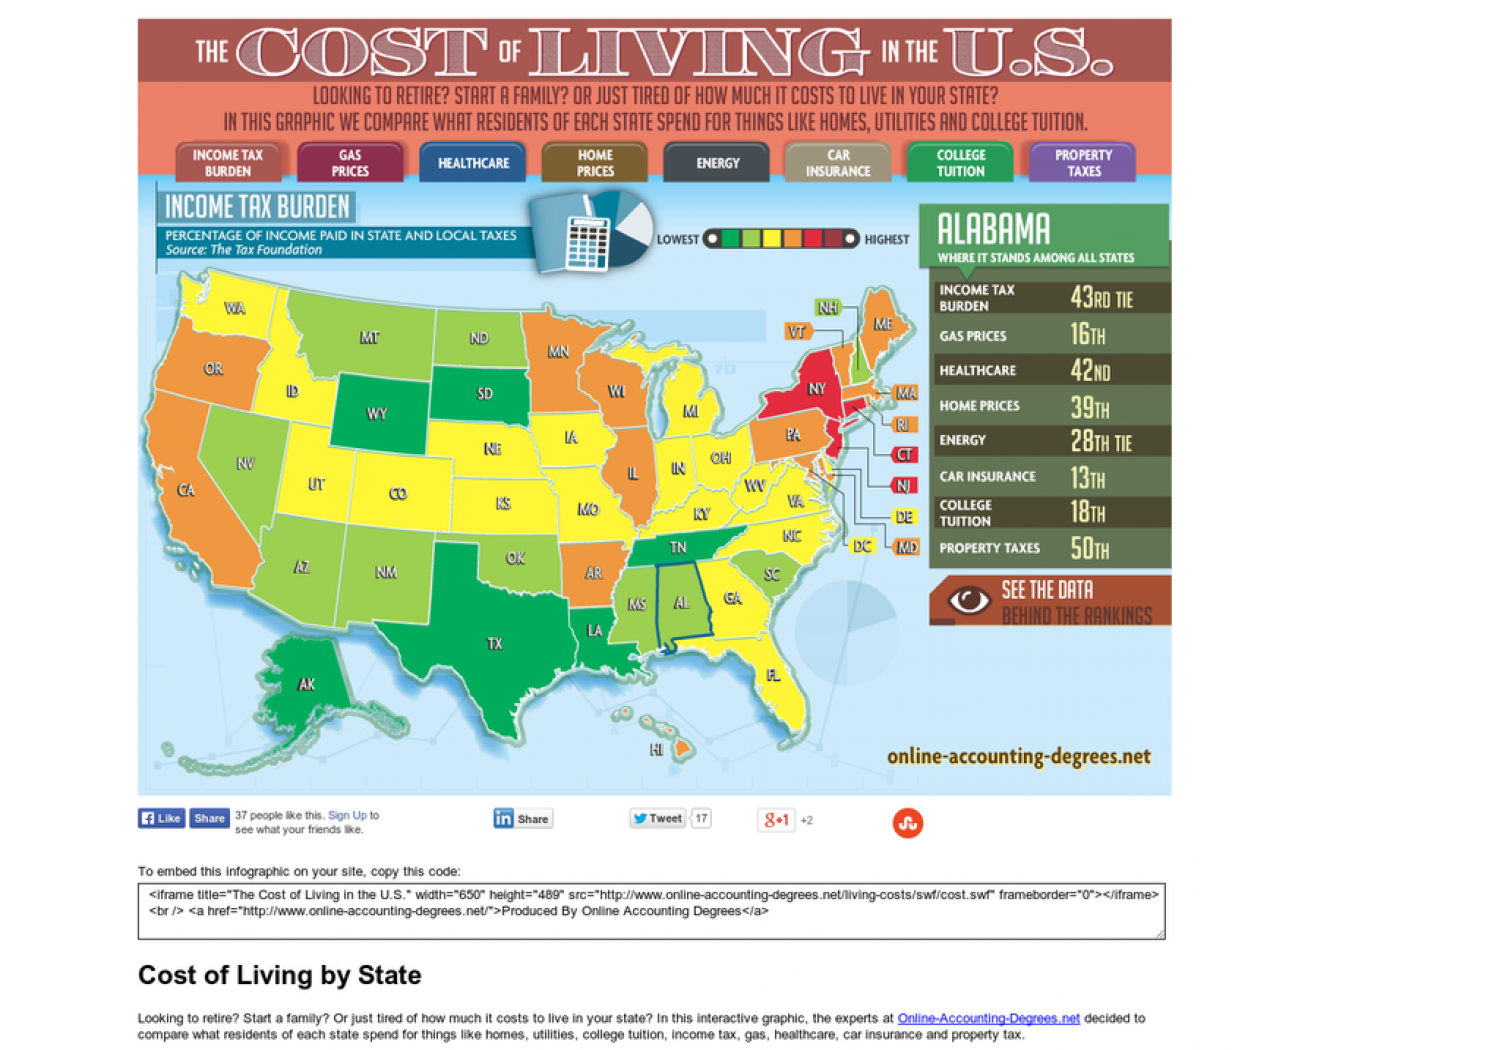 The Cost of Living in the U.S. Infographic